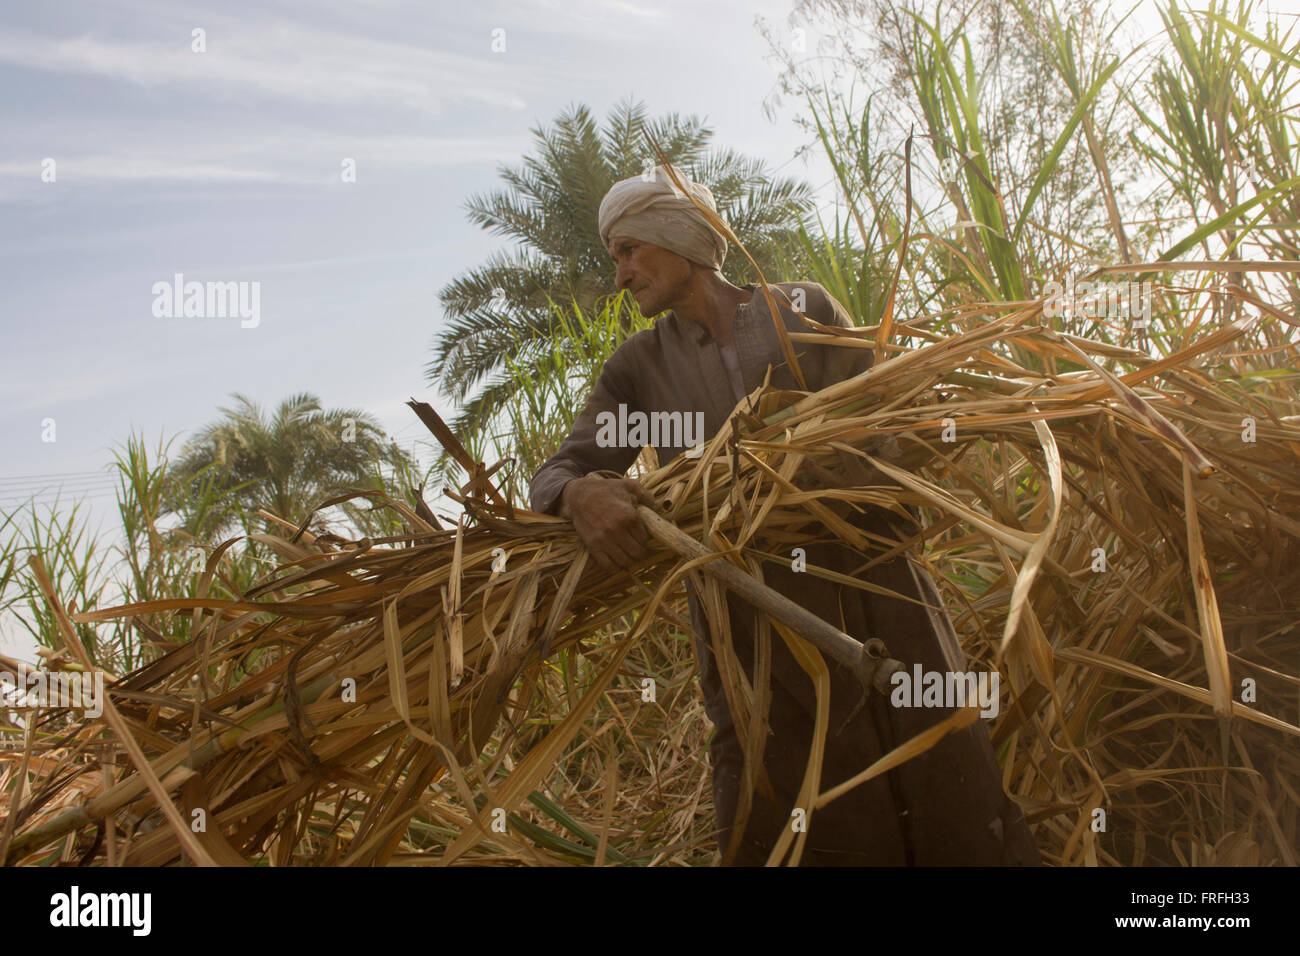 A local sugarcane cutter works in late-morning heat and dust near Qurna, a village on the West Bank of Luxor, Nile - Stock Image